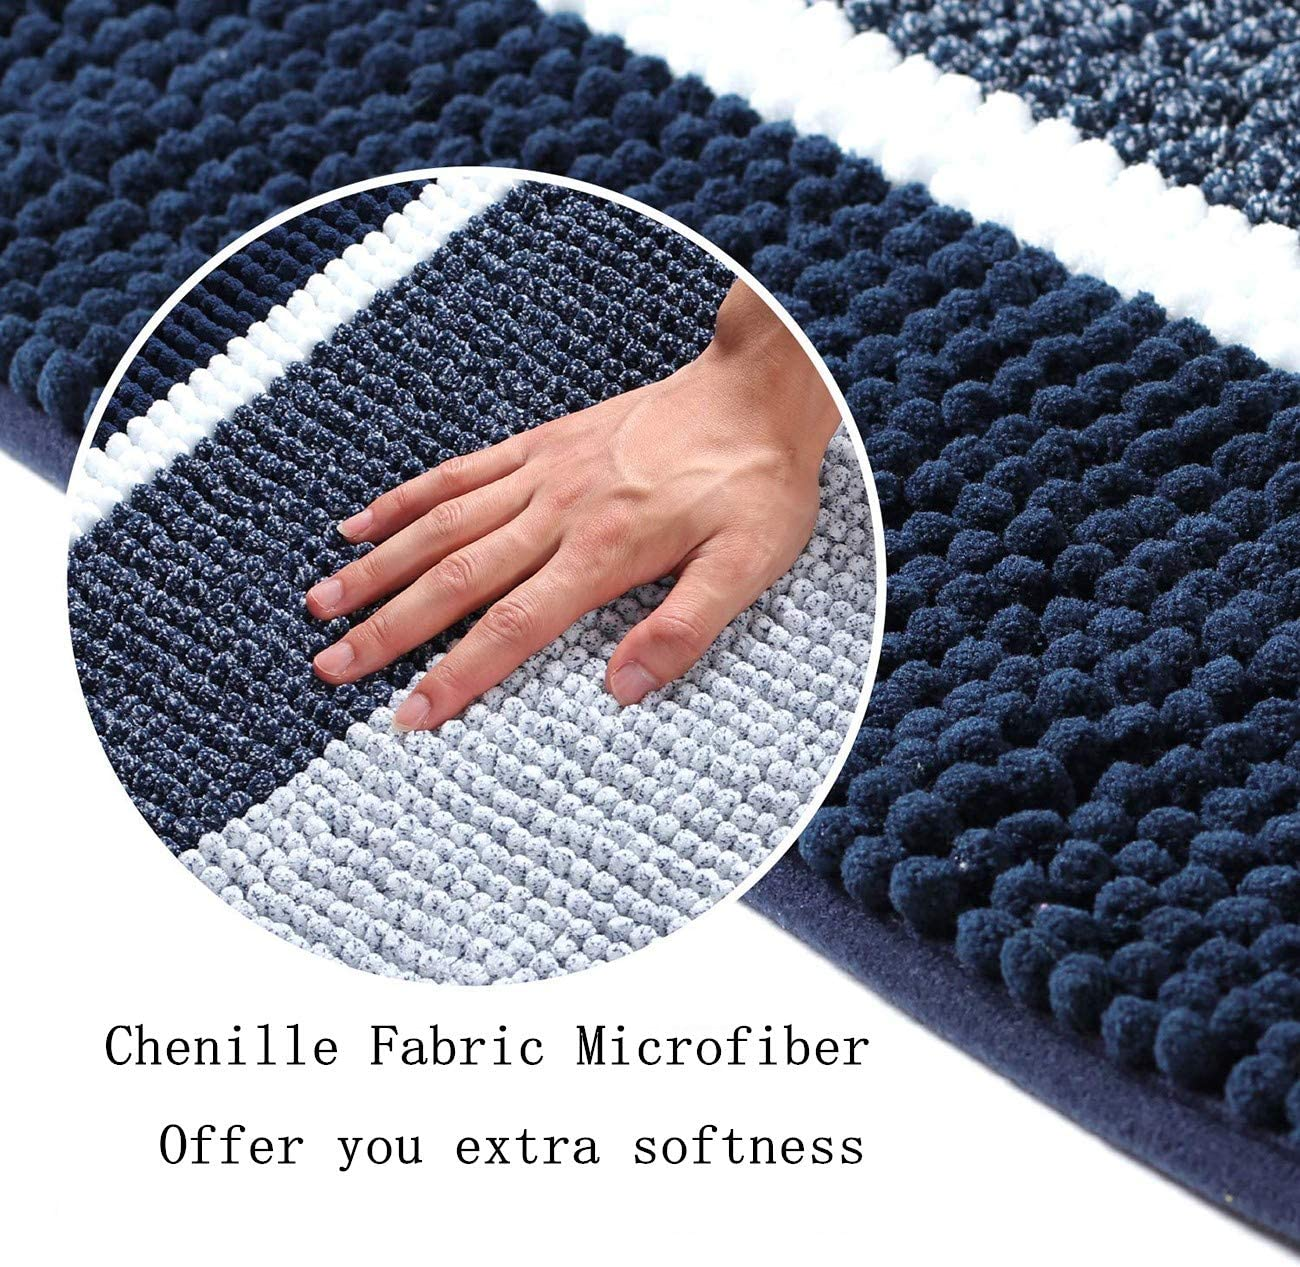 Navy Machine Washable Plush Mats for Bathroom Xuanmuque Shaggy Striped Chenille 2 Piece Bath Rugs Set Includes 20x20 Oval U-Shape Contoured Mat for Toilet and 32x20 Carpet Rugs